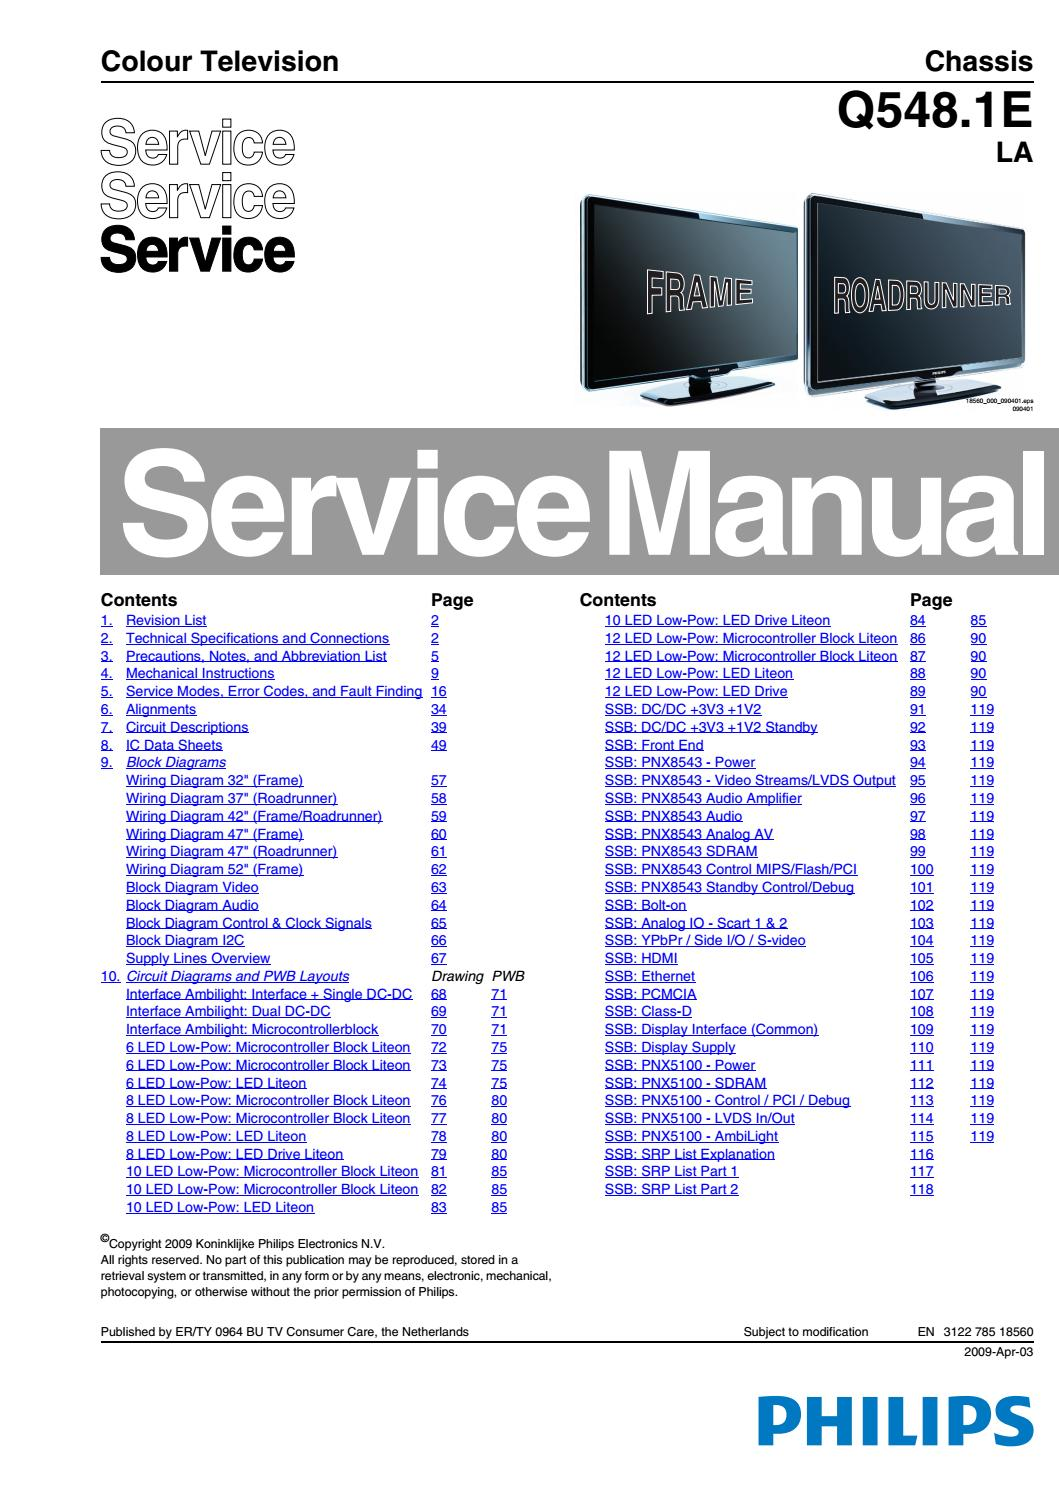 Philips Tv Wiring Diagram Schematics Cable Manual De Servio Tvs 32pfl7404h 12 42pfl7404h For To Box